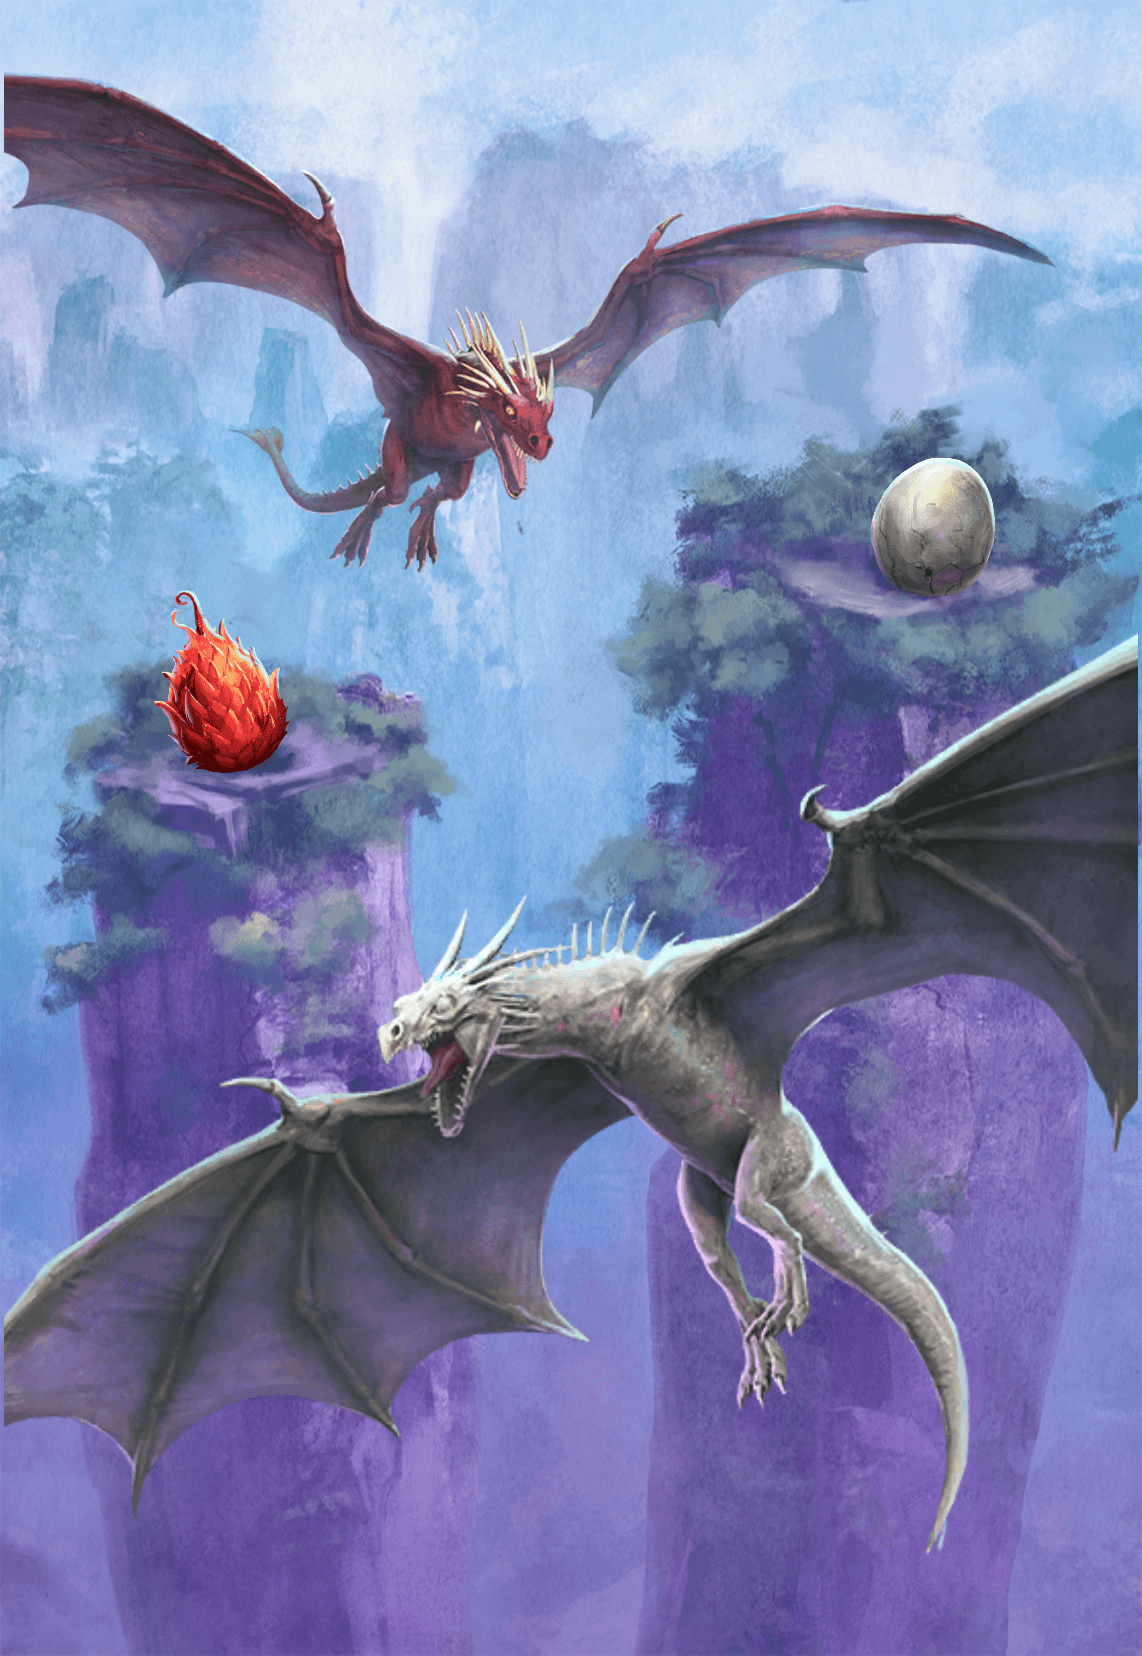 New Oddities: How to Find Dragons and Dragon Eggs in Wizards